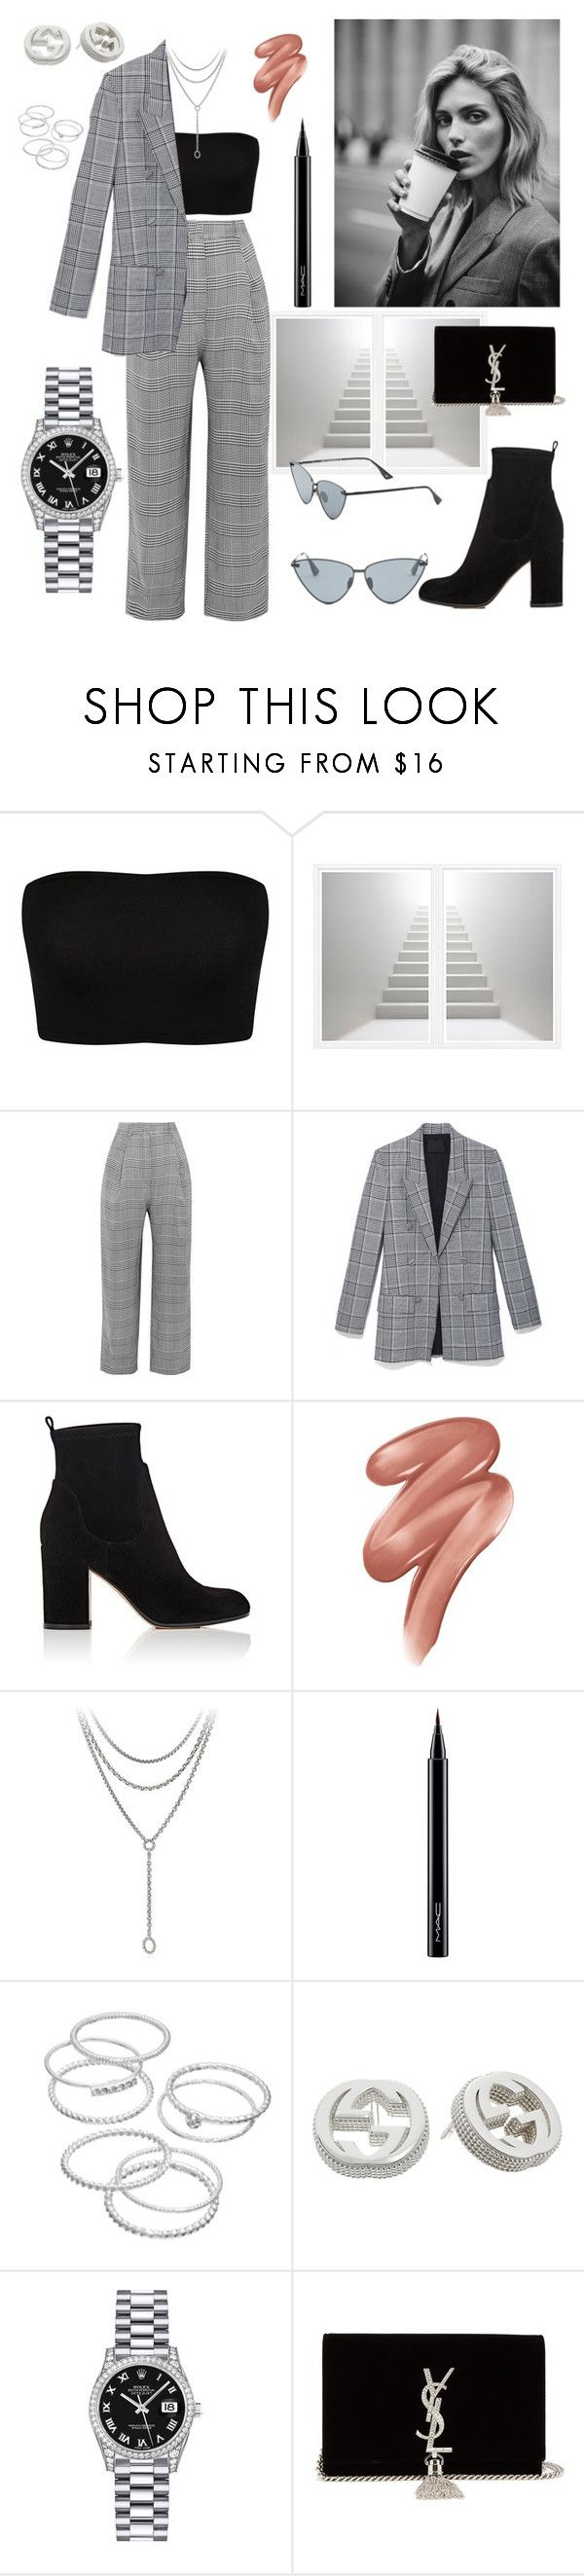 """""""Get Your Sh*t Together"""" by xnicolechin ❤ liked on Polyvore featuring William Stafford, Carmen March, Alexander Wang, Gianvito Rossi, Anja, Clinique, David Yurman, MAC Cosmetics, LC Lauren Conrad and Gucci"""